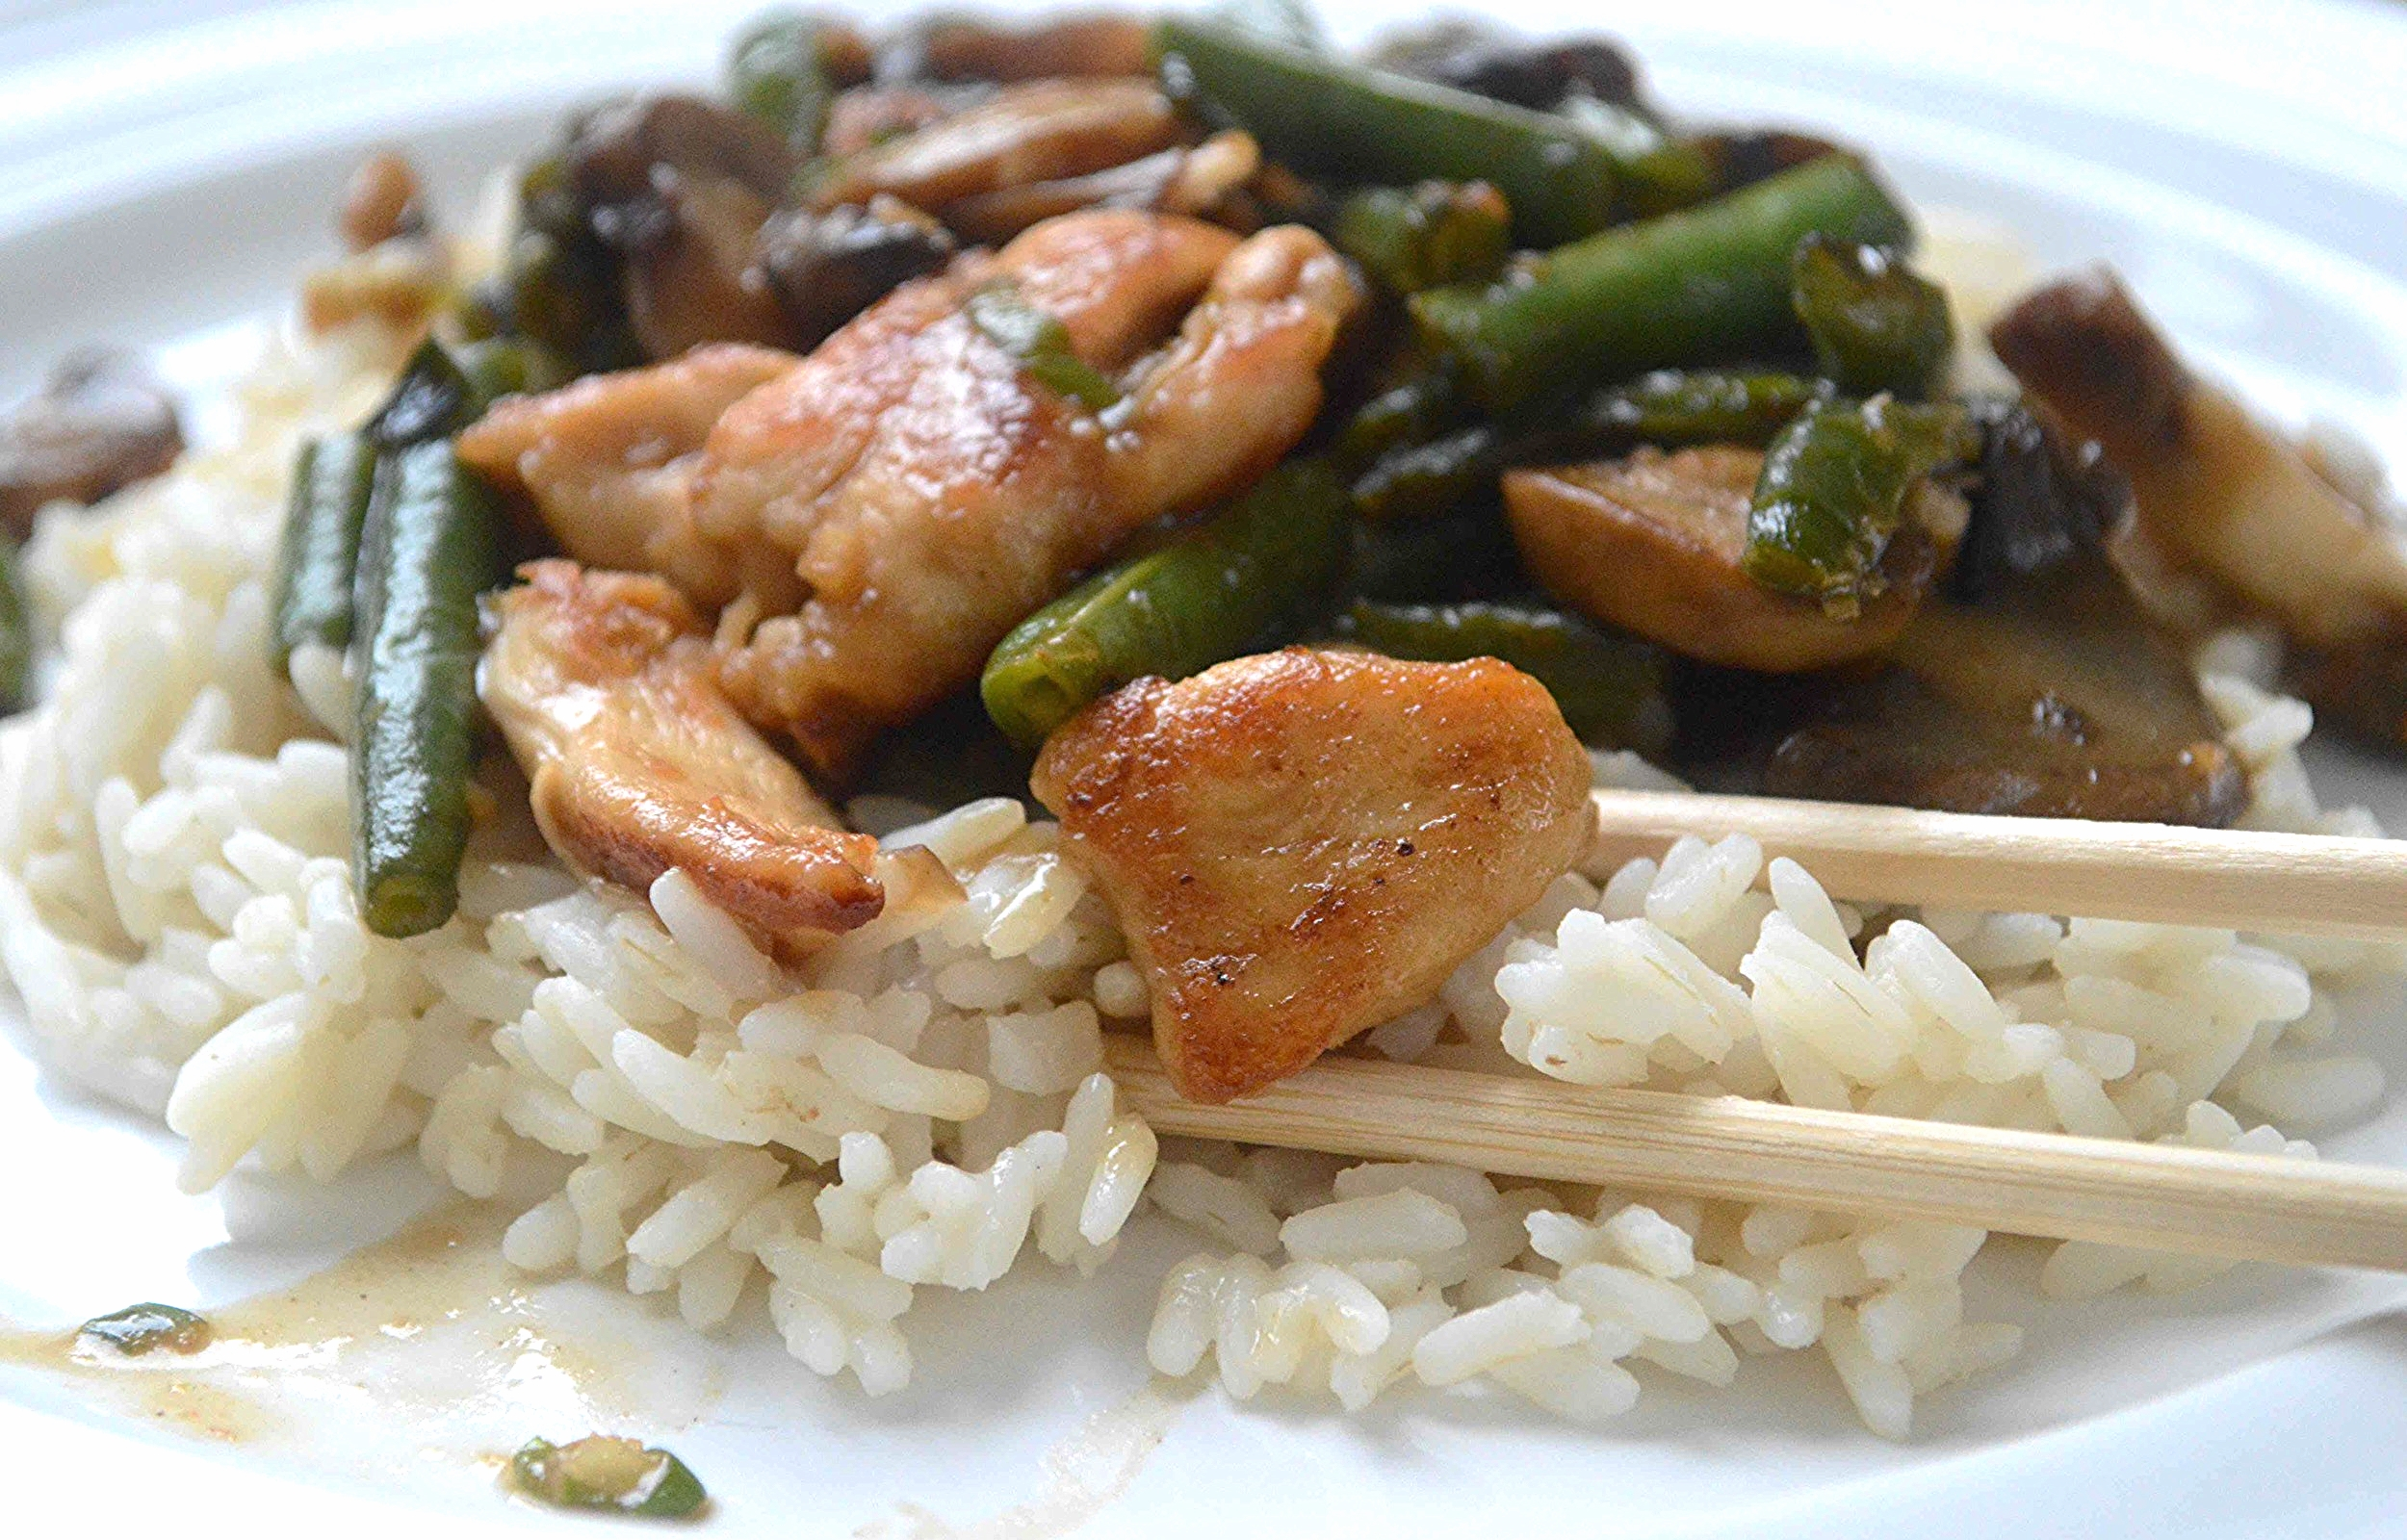 Chicken Teriyaki Stir-Fry with Green Beans and Mushrooms